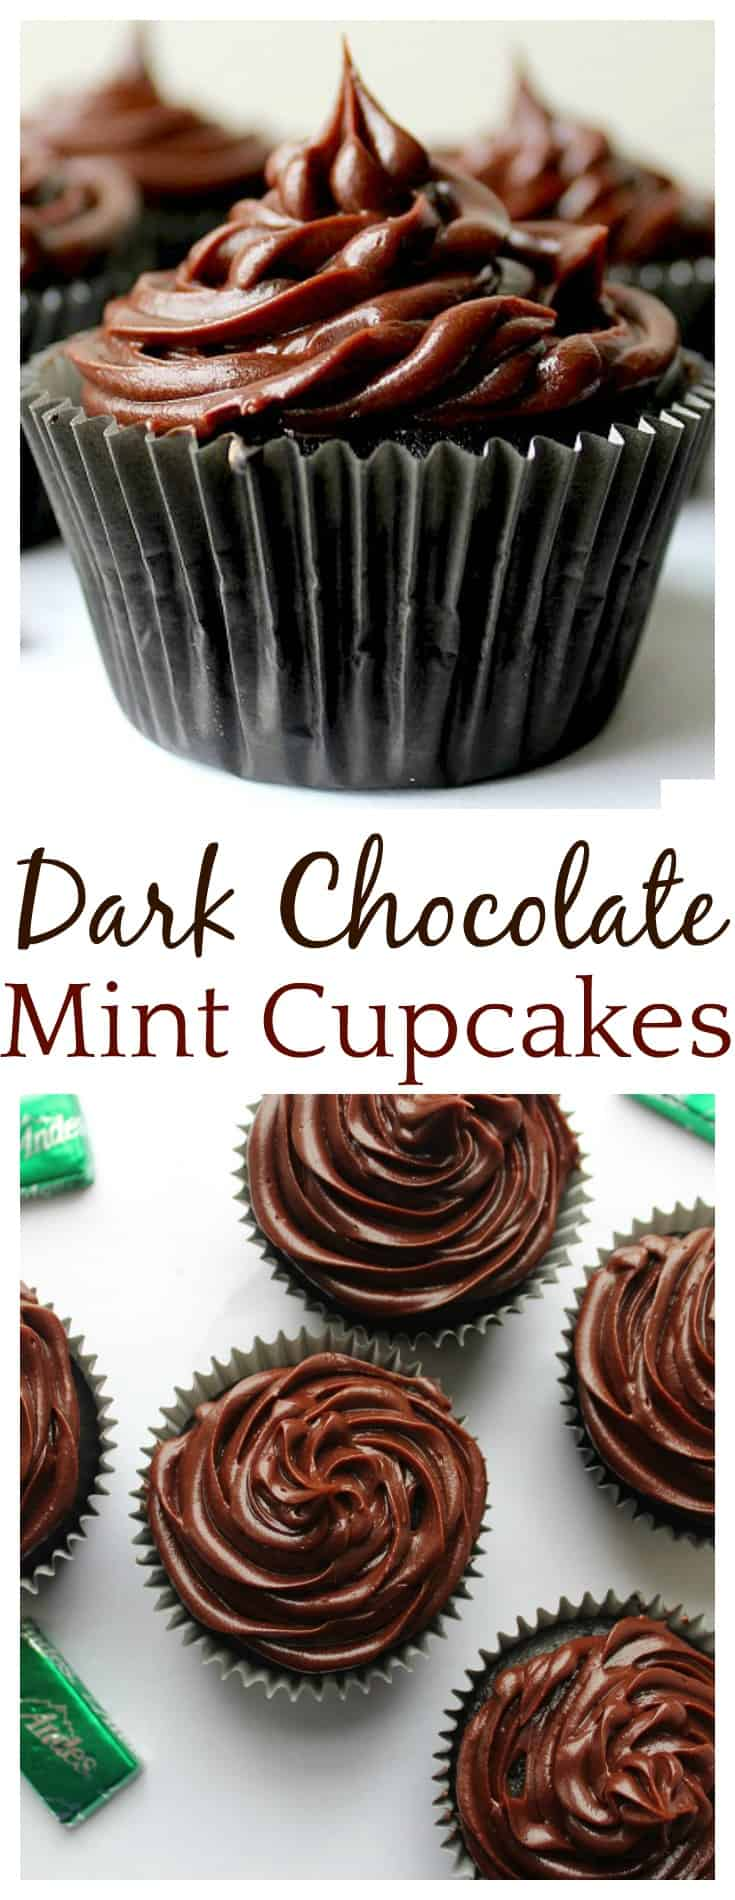 Ohhh these Dark Chocolate Mint Cupcakes were so easy to make and very indulgent! The mint is not overpowering at all! They will make the perfect Valentine's Day dessert but I can see making these for birthdays, as a St. Patrick's Day dessert, or even for Christmas!